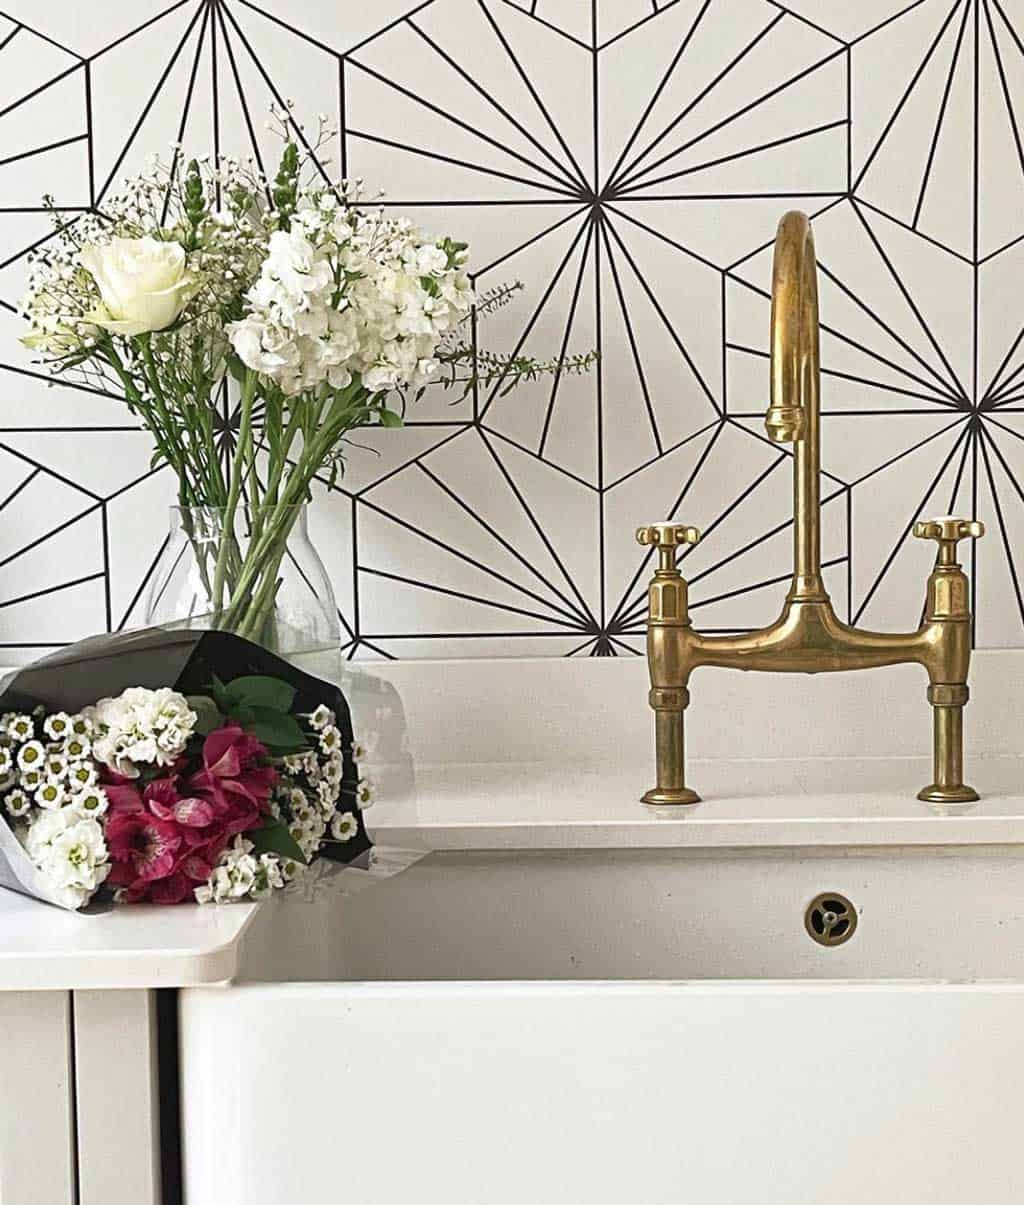 Lilypad tile splashback and aged brass Perrin and Rowe taps